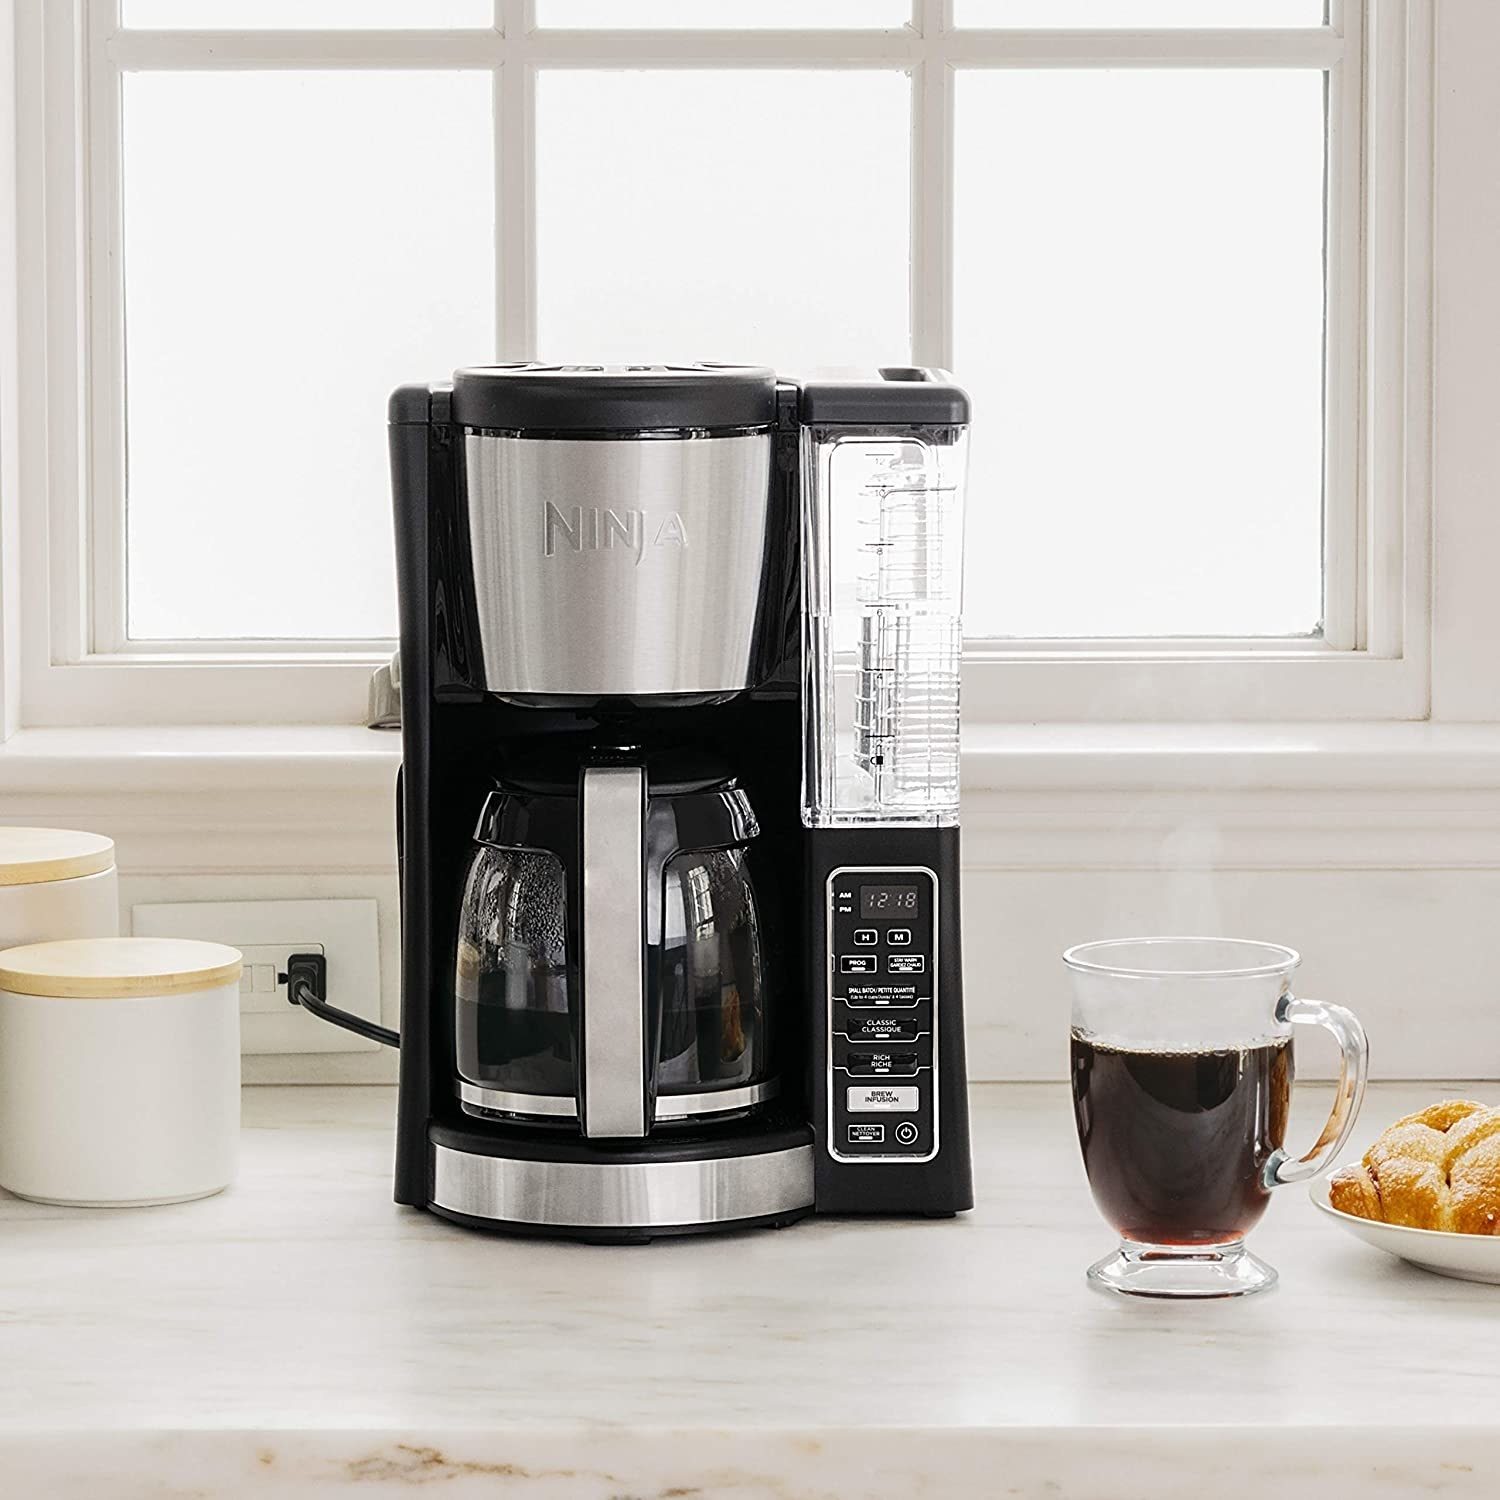 the coffee maker on a countertop